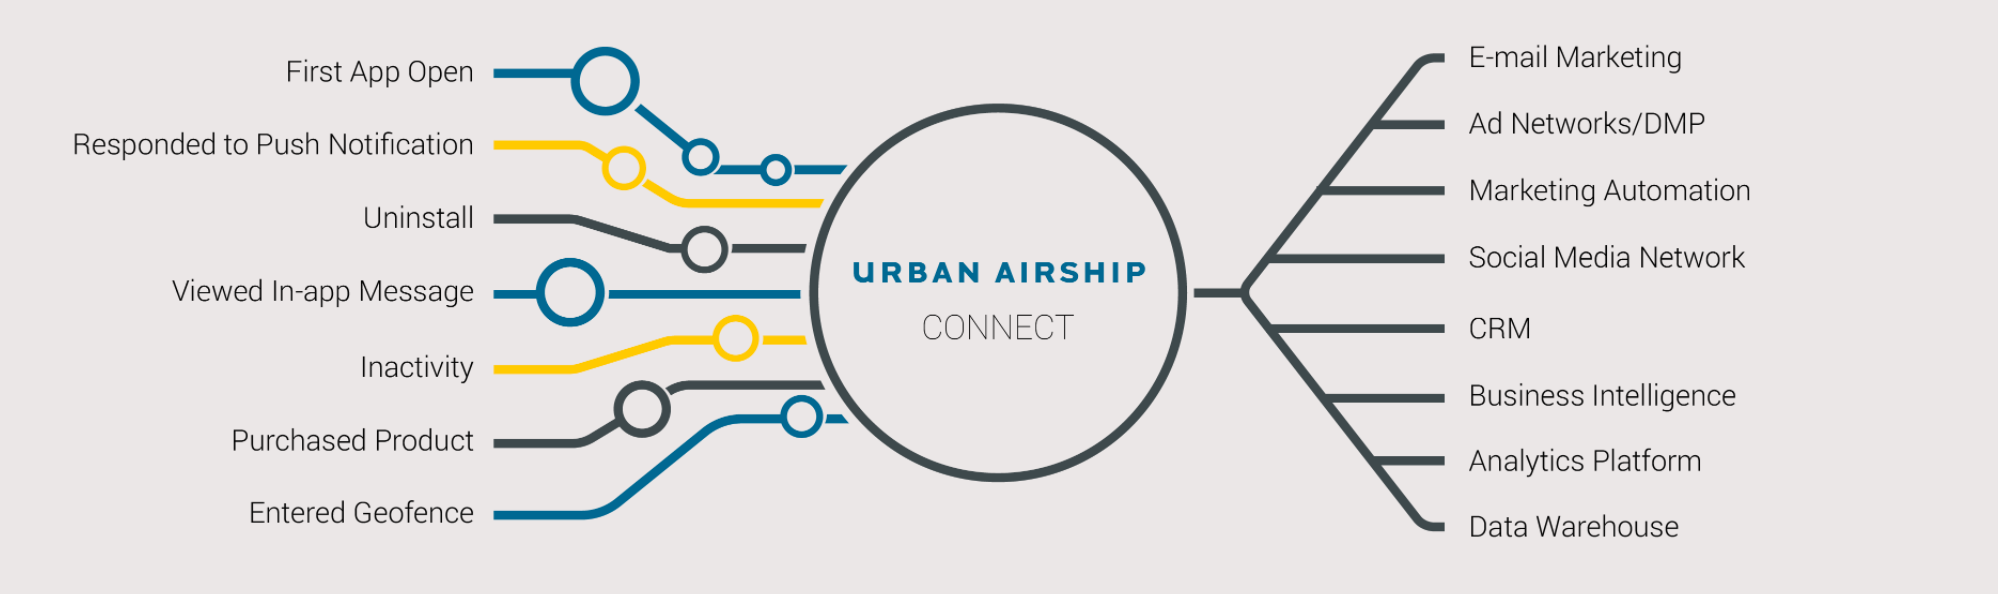 Connect Urban Airship's Tool to Enable Real Time Marketing Across All Your Marketing Channels